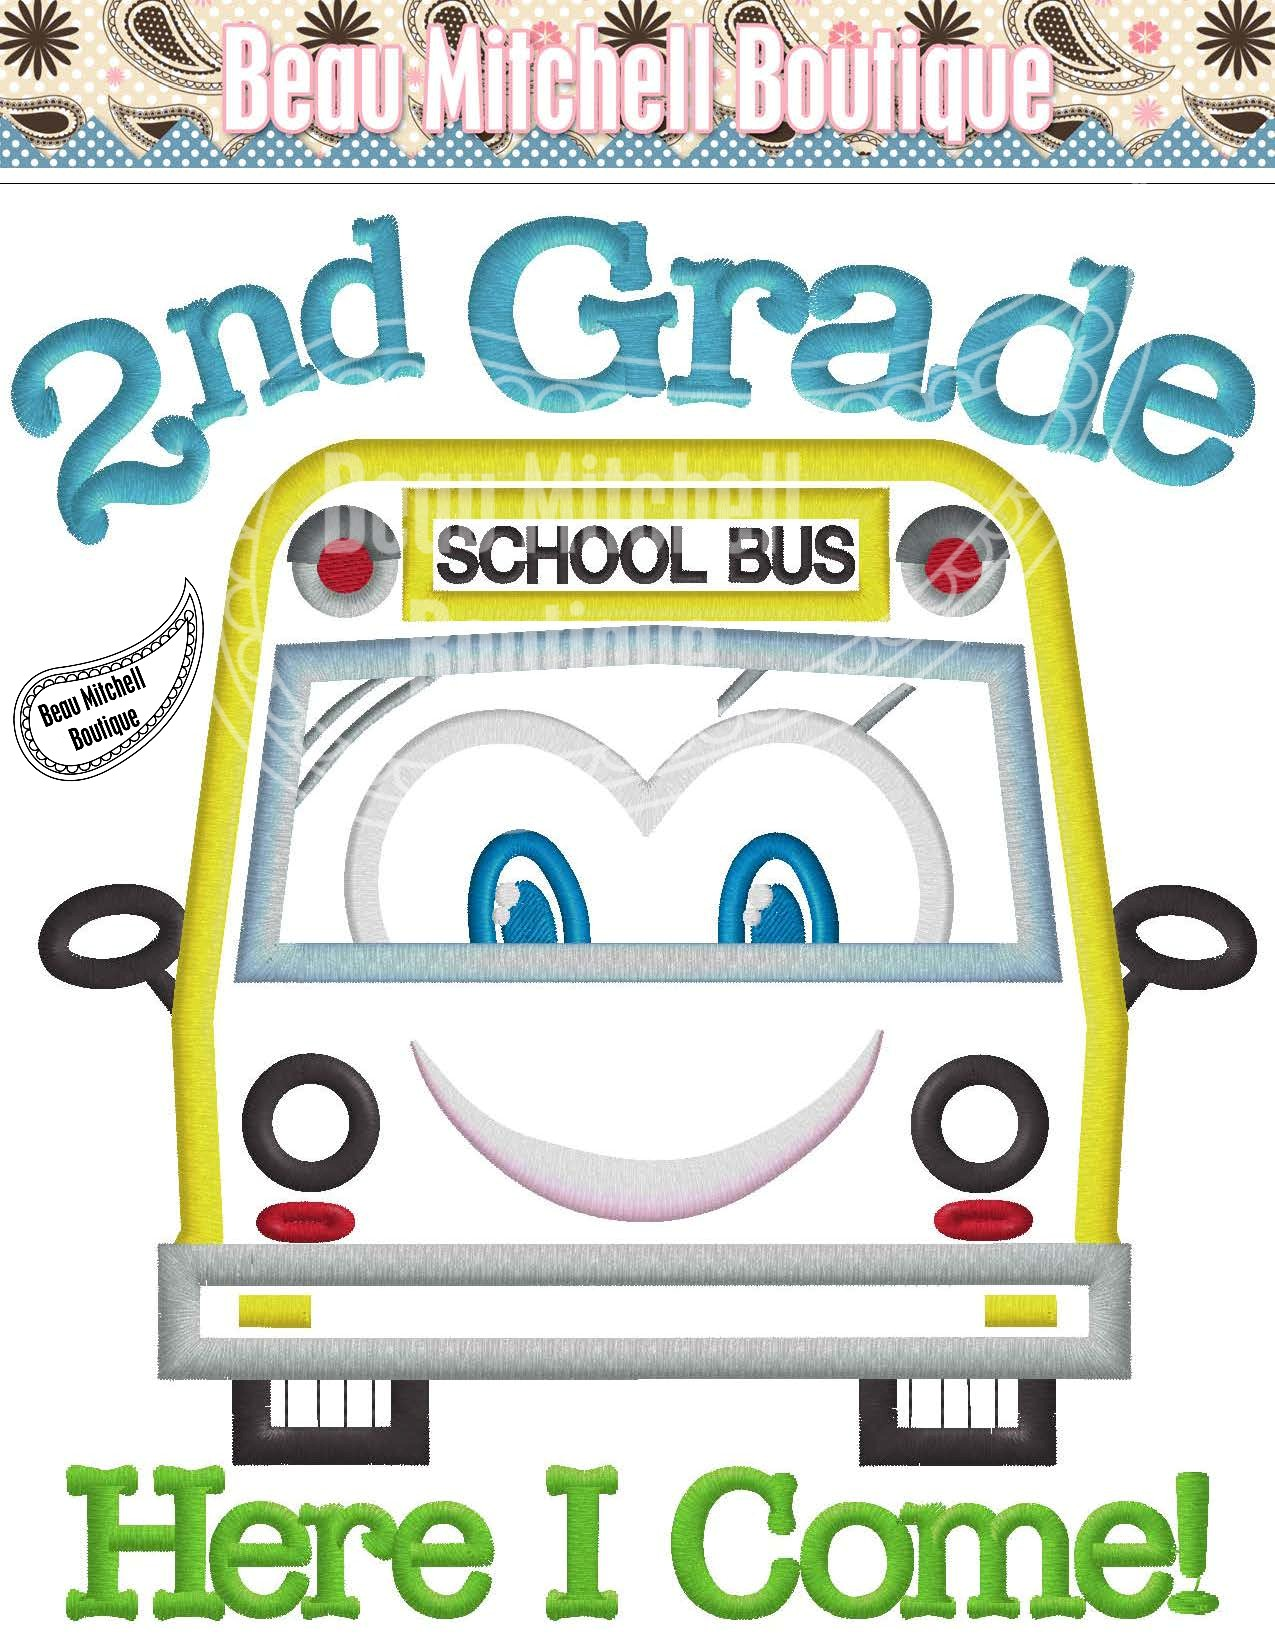 worksheet 2nd Grade 2nd grade here i come with a bus beau mitchell boutique bus